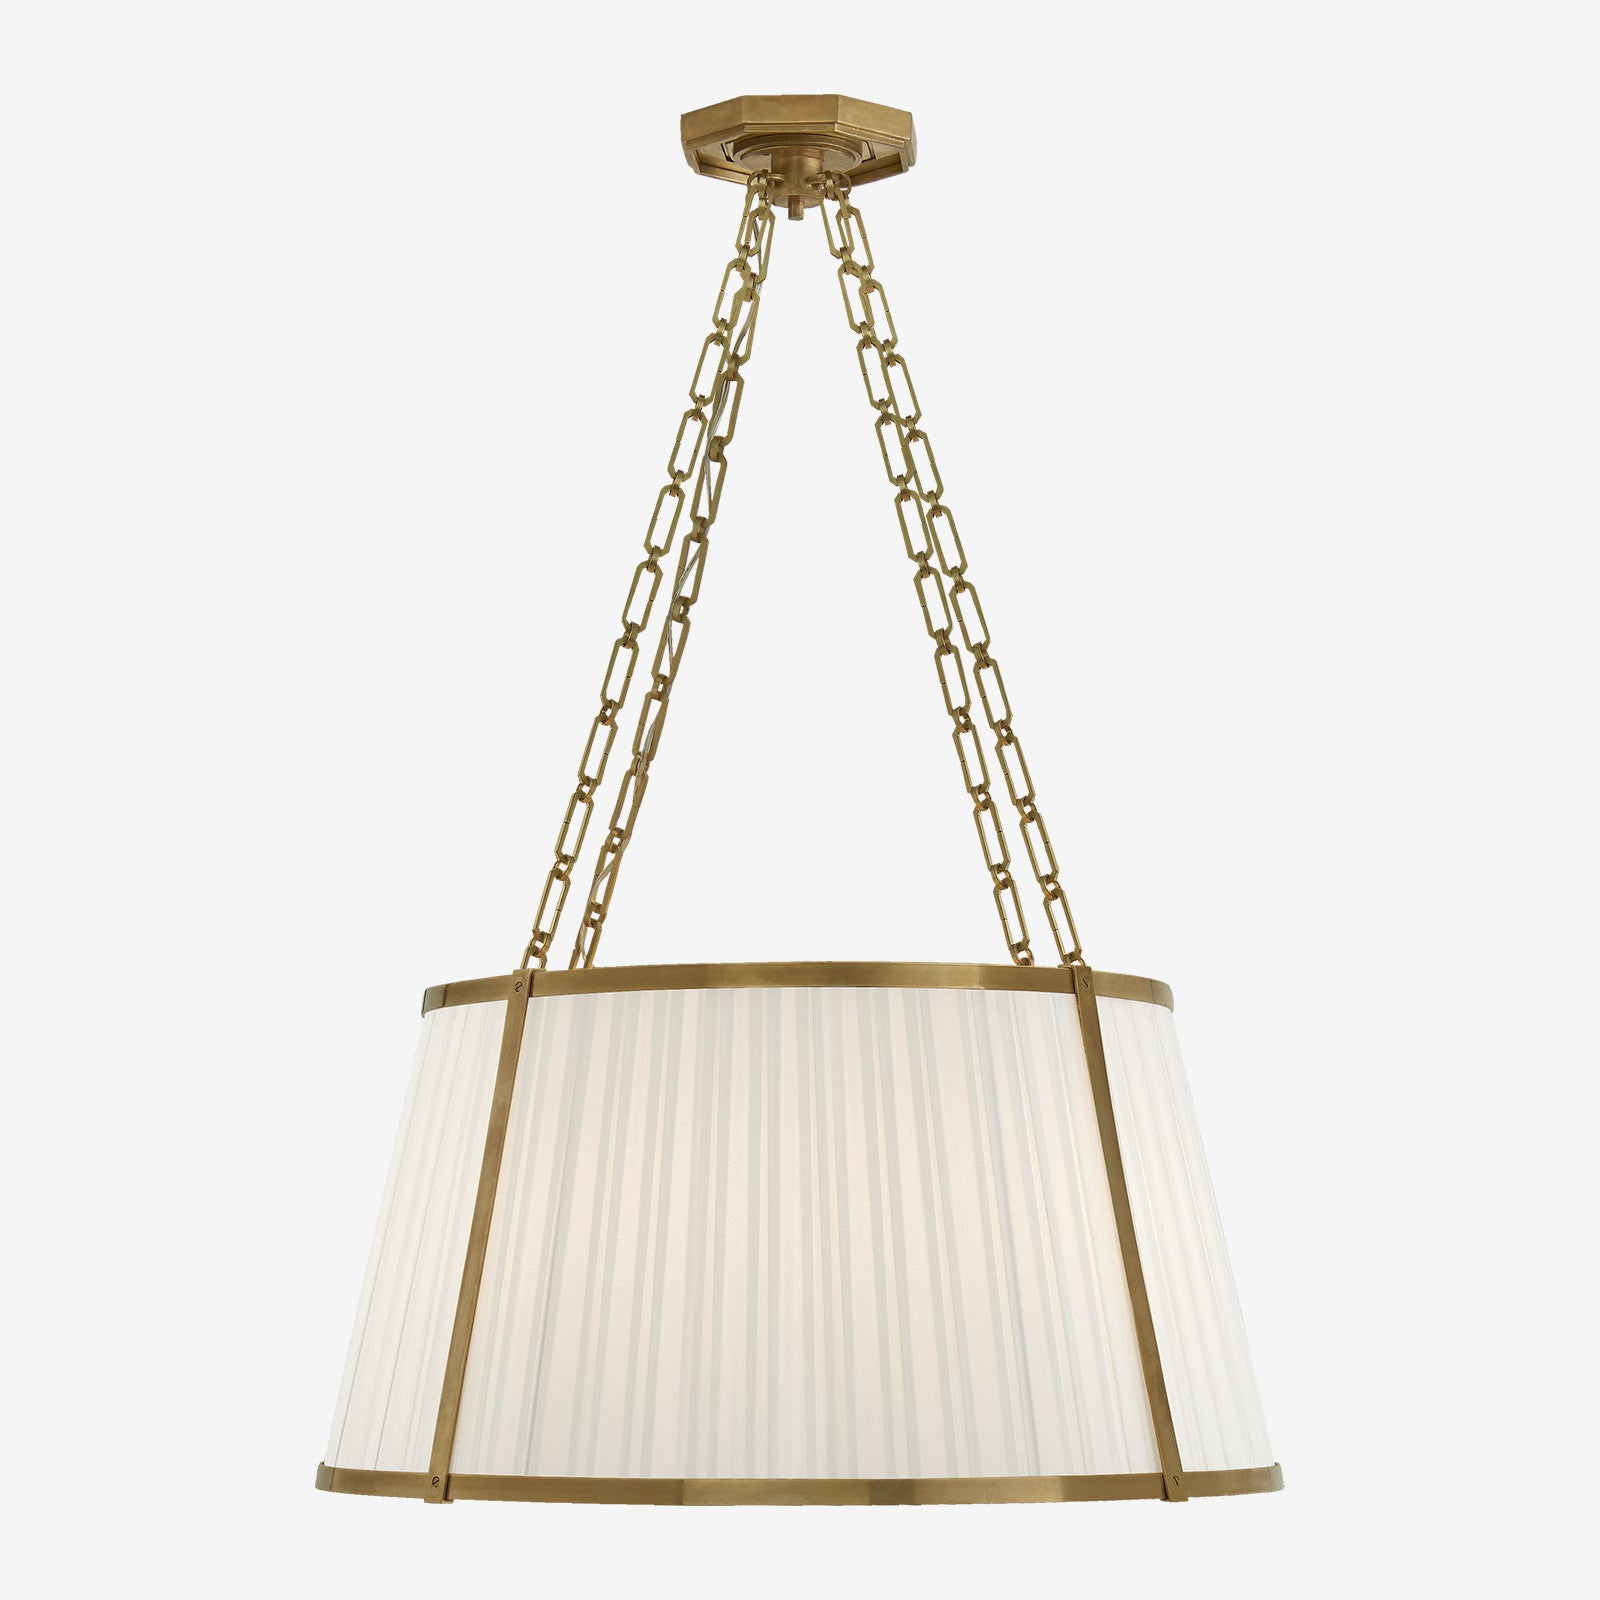 Ralph Lauren – The Montauk Lighting Co